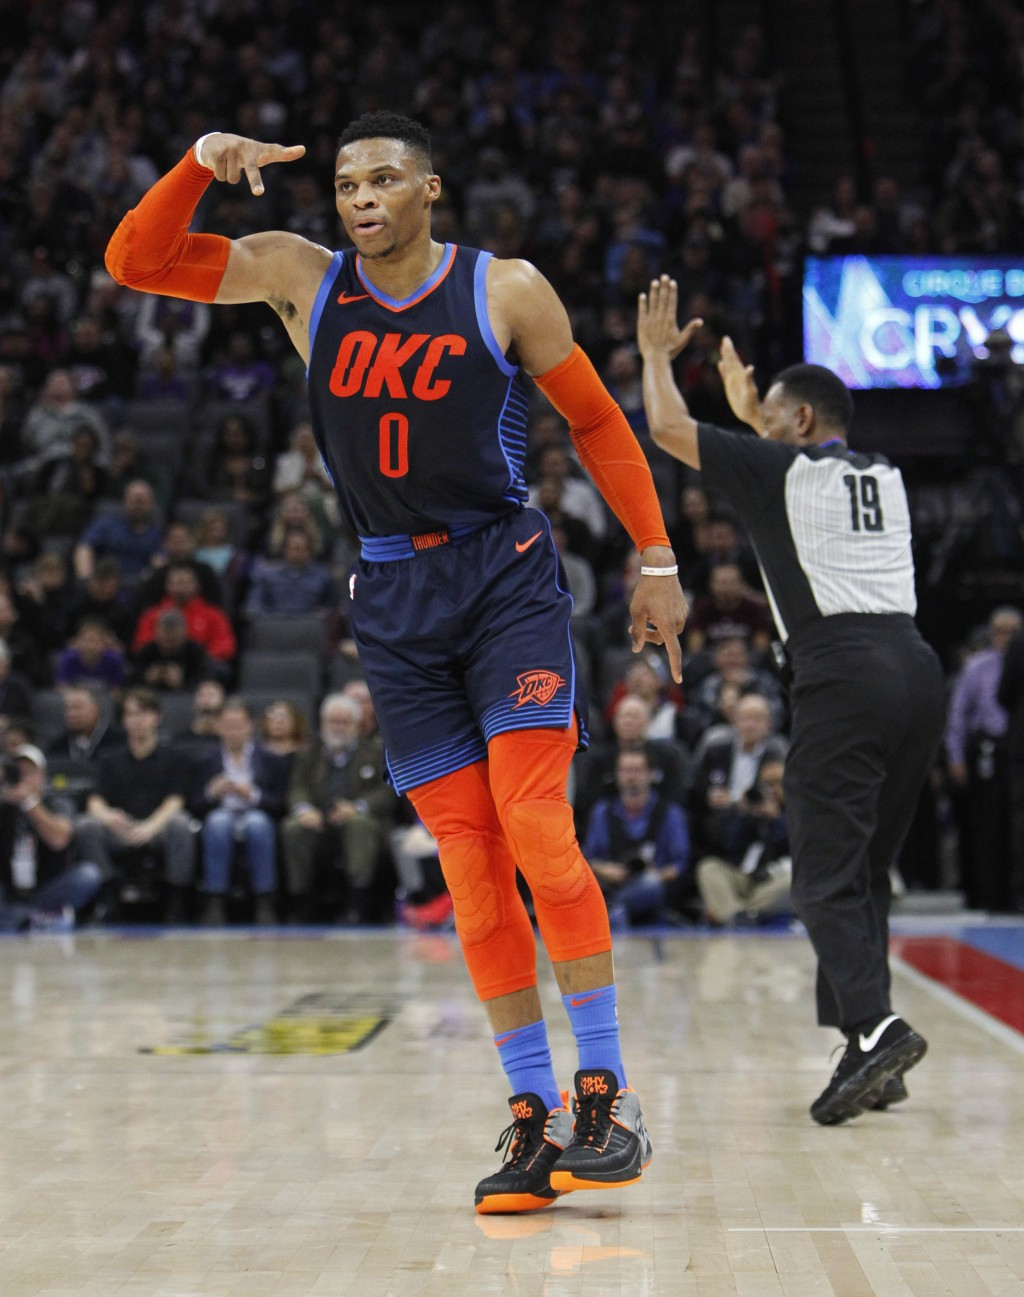 Oklahoma City Thunder guard Russell Westbrook (0) celebrates after hitting a 3-point basket against the Sacramento Kings during the first half of an N